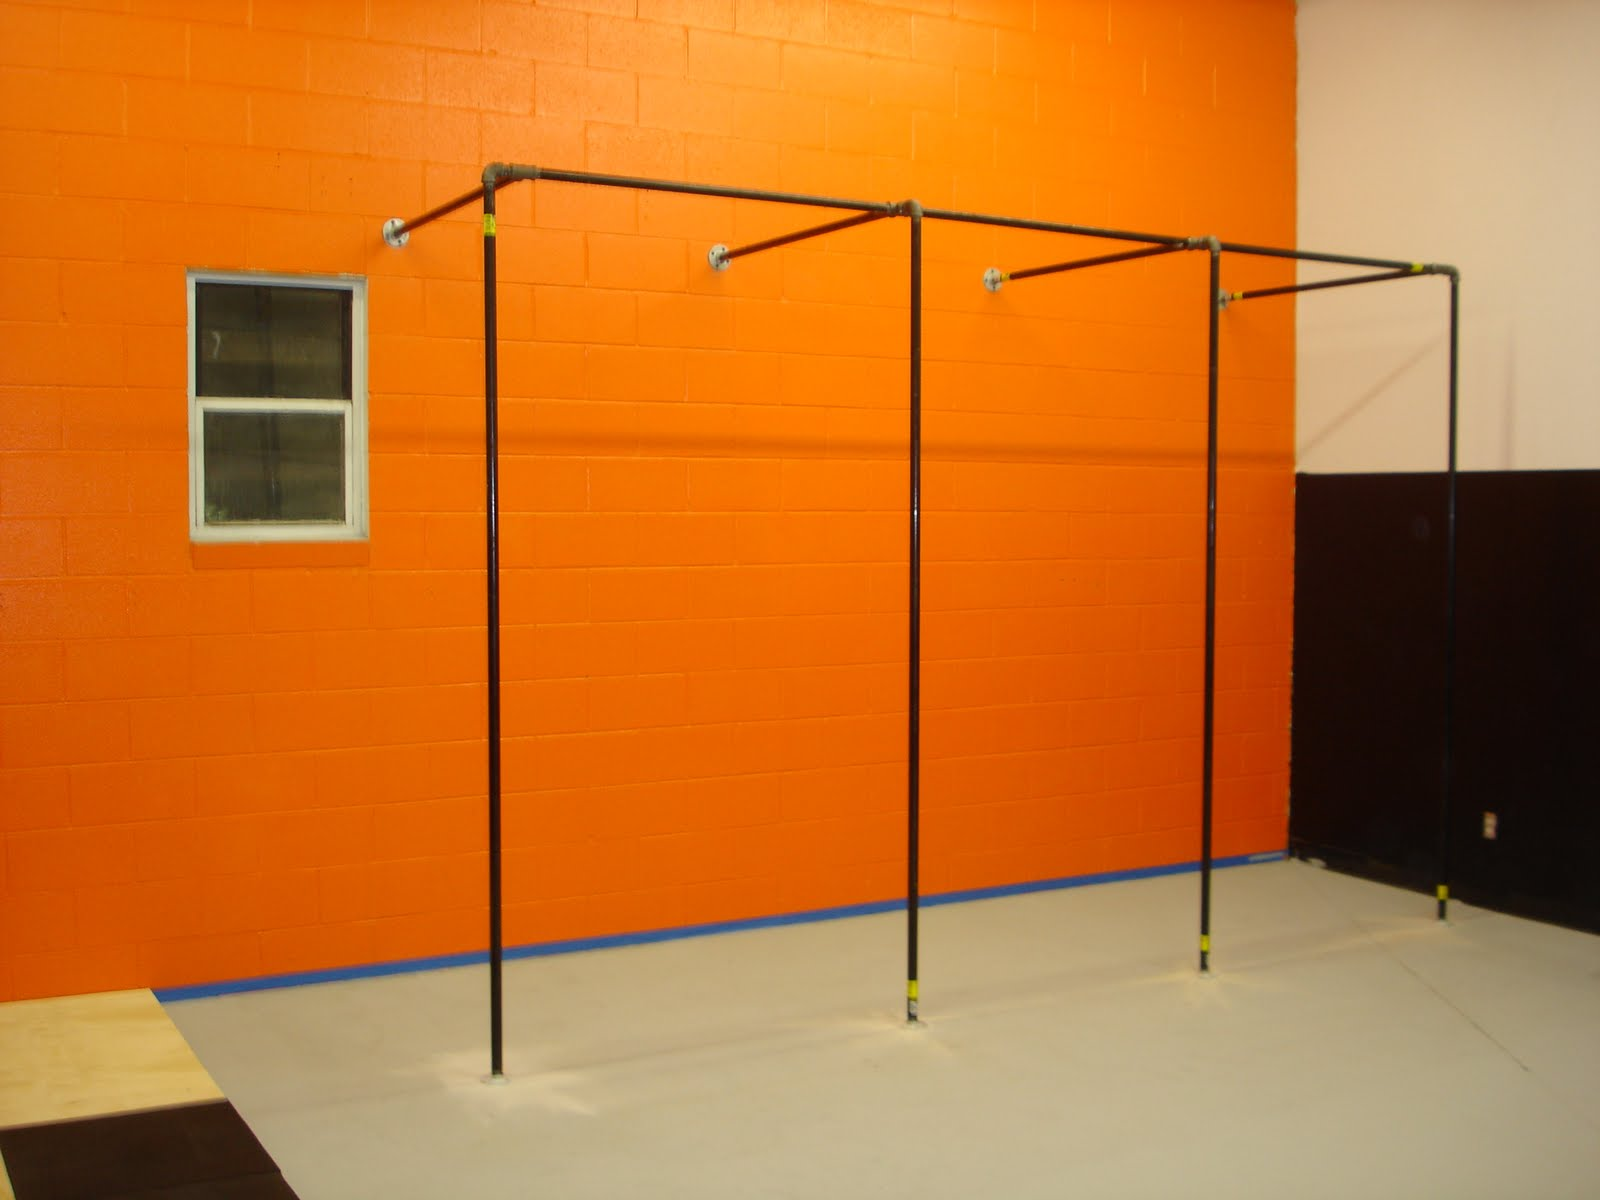 Homemade gym equipment stronger i also built a lifting platform to put my power rack on and do all my heavy deadlifts without smashing my weights and my floor i found a design on someone solutioingenieria Choice Image